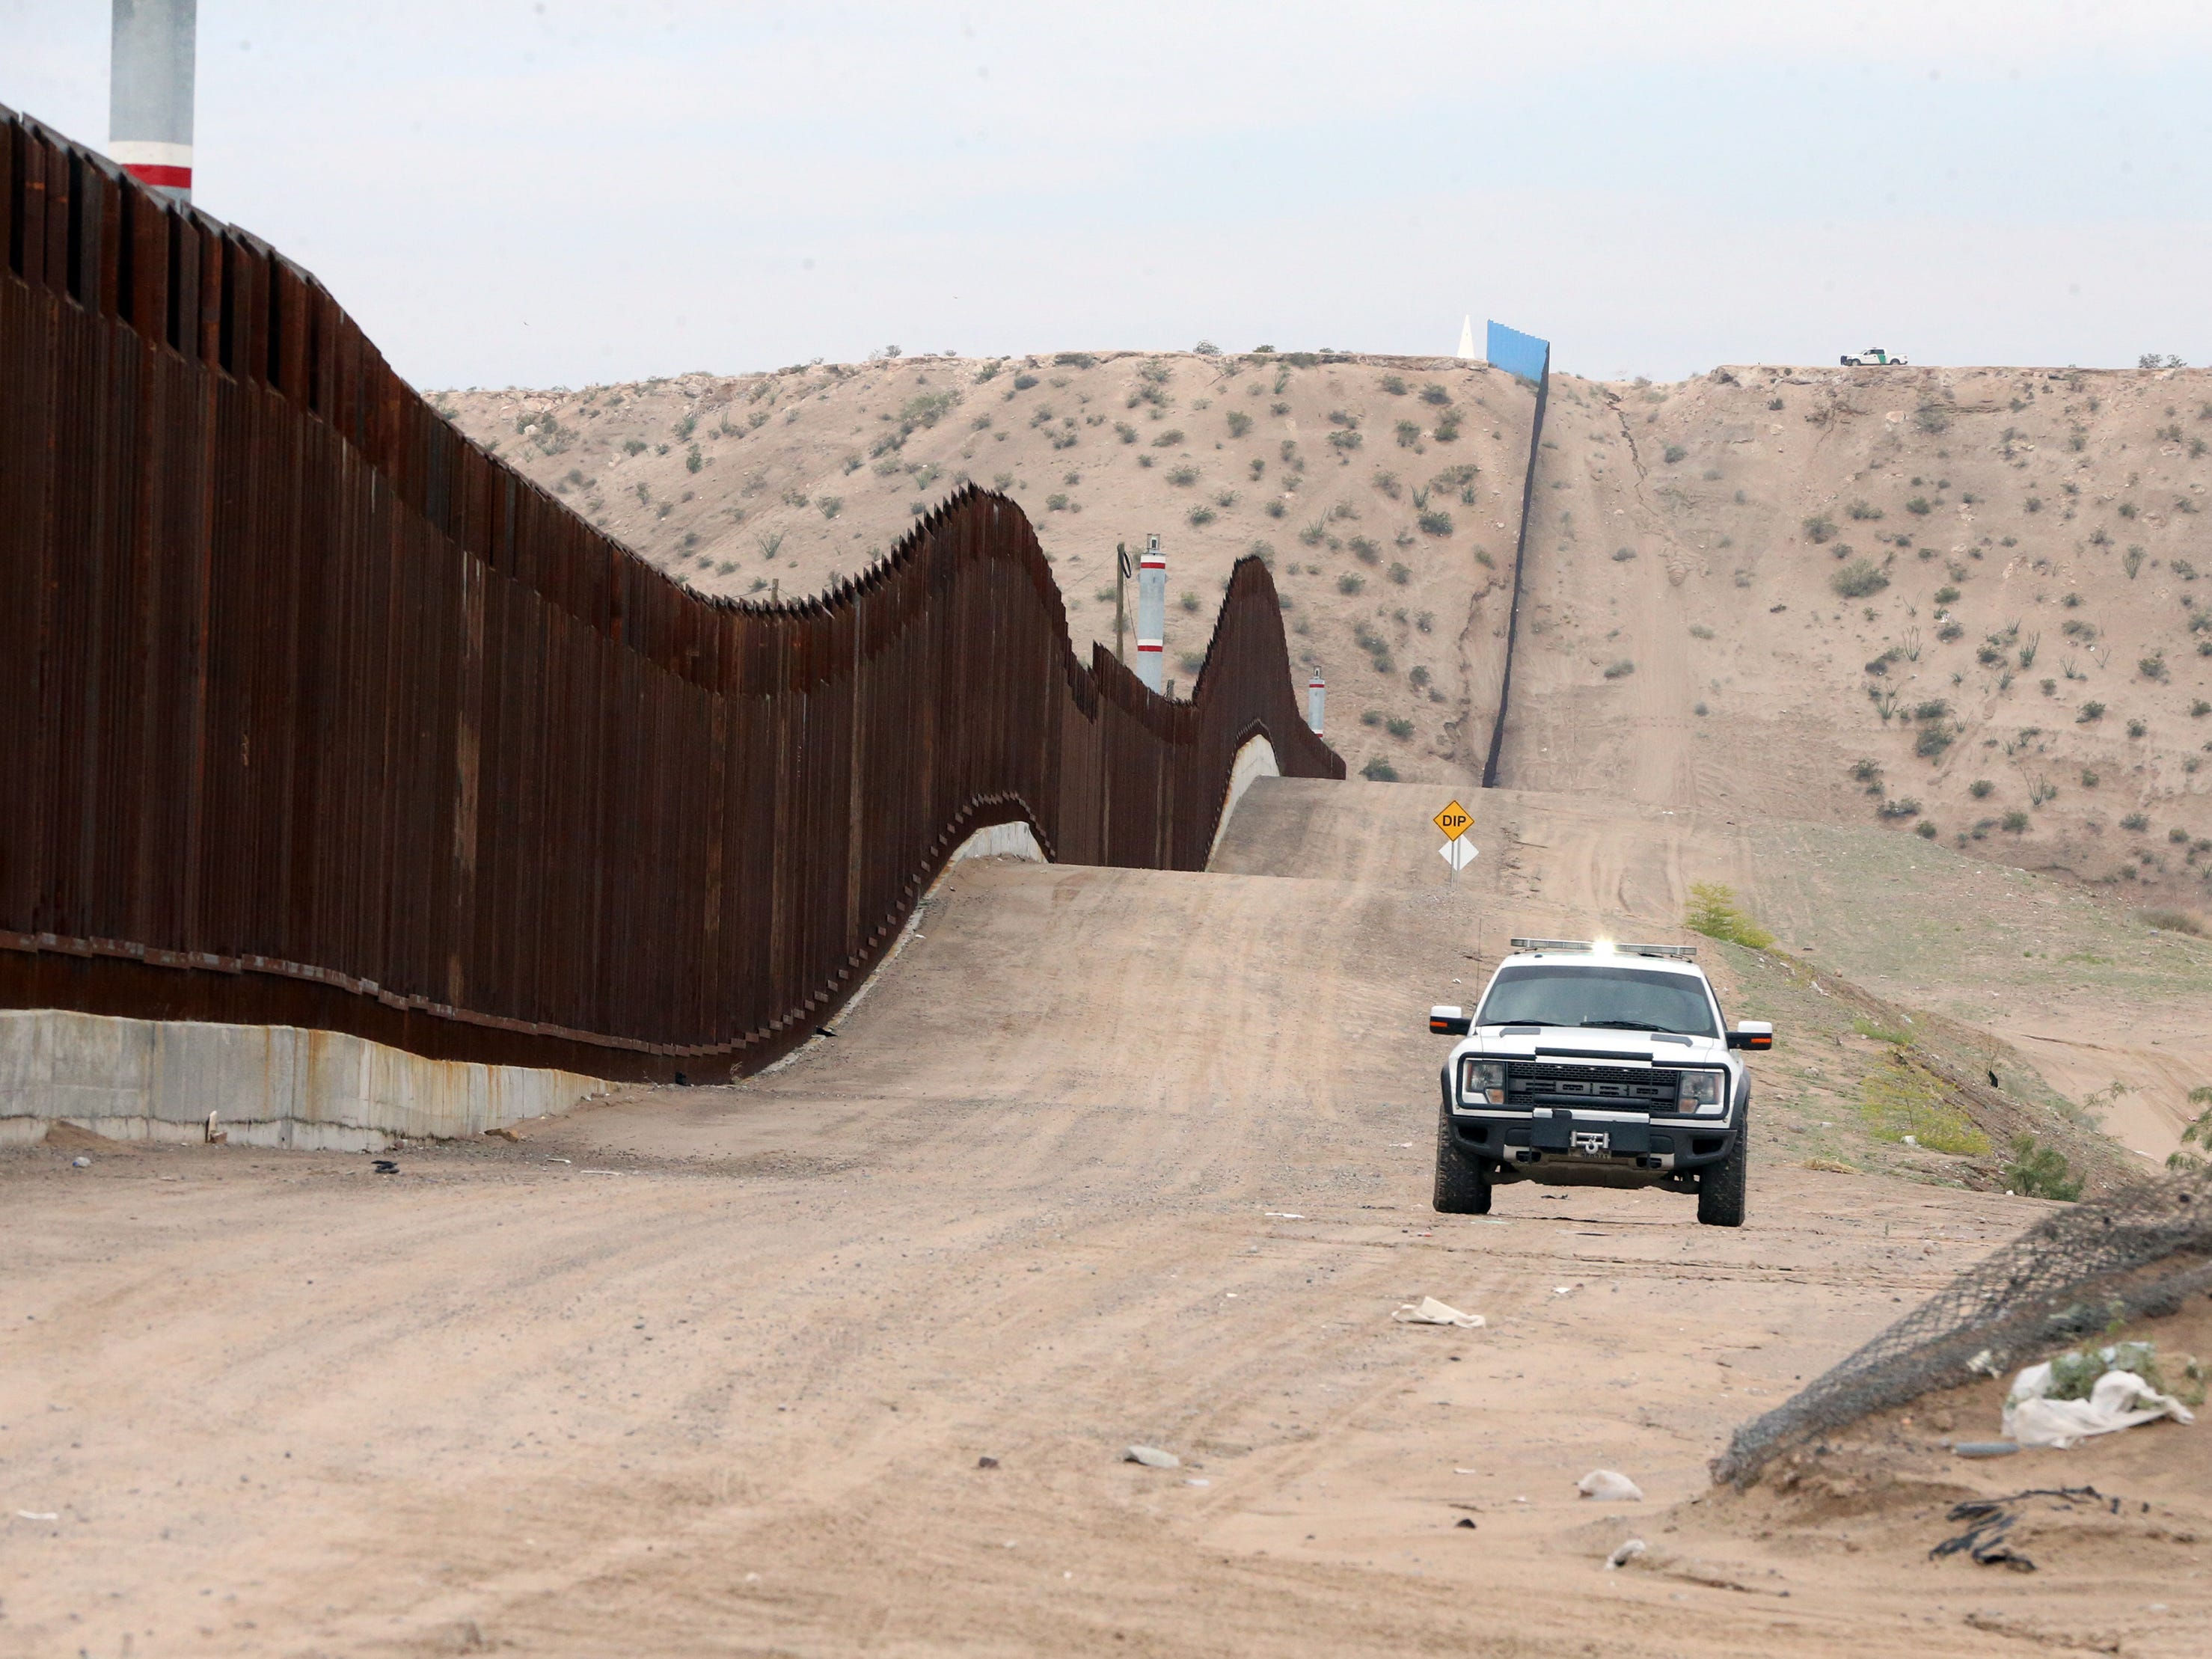 A U.S. Border Patrol vehicle parked at a distance from where a gathering of interfaith groups took place at the border fence in Sunland Park, N.M. Friday.